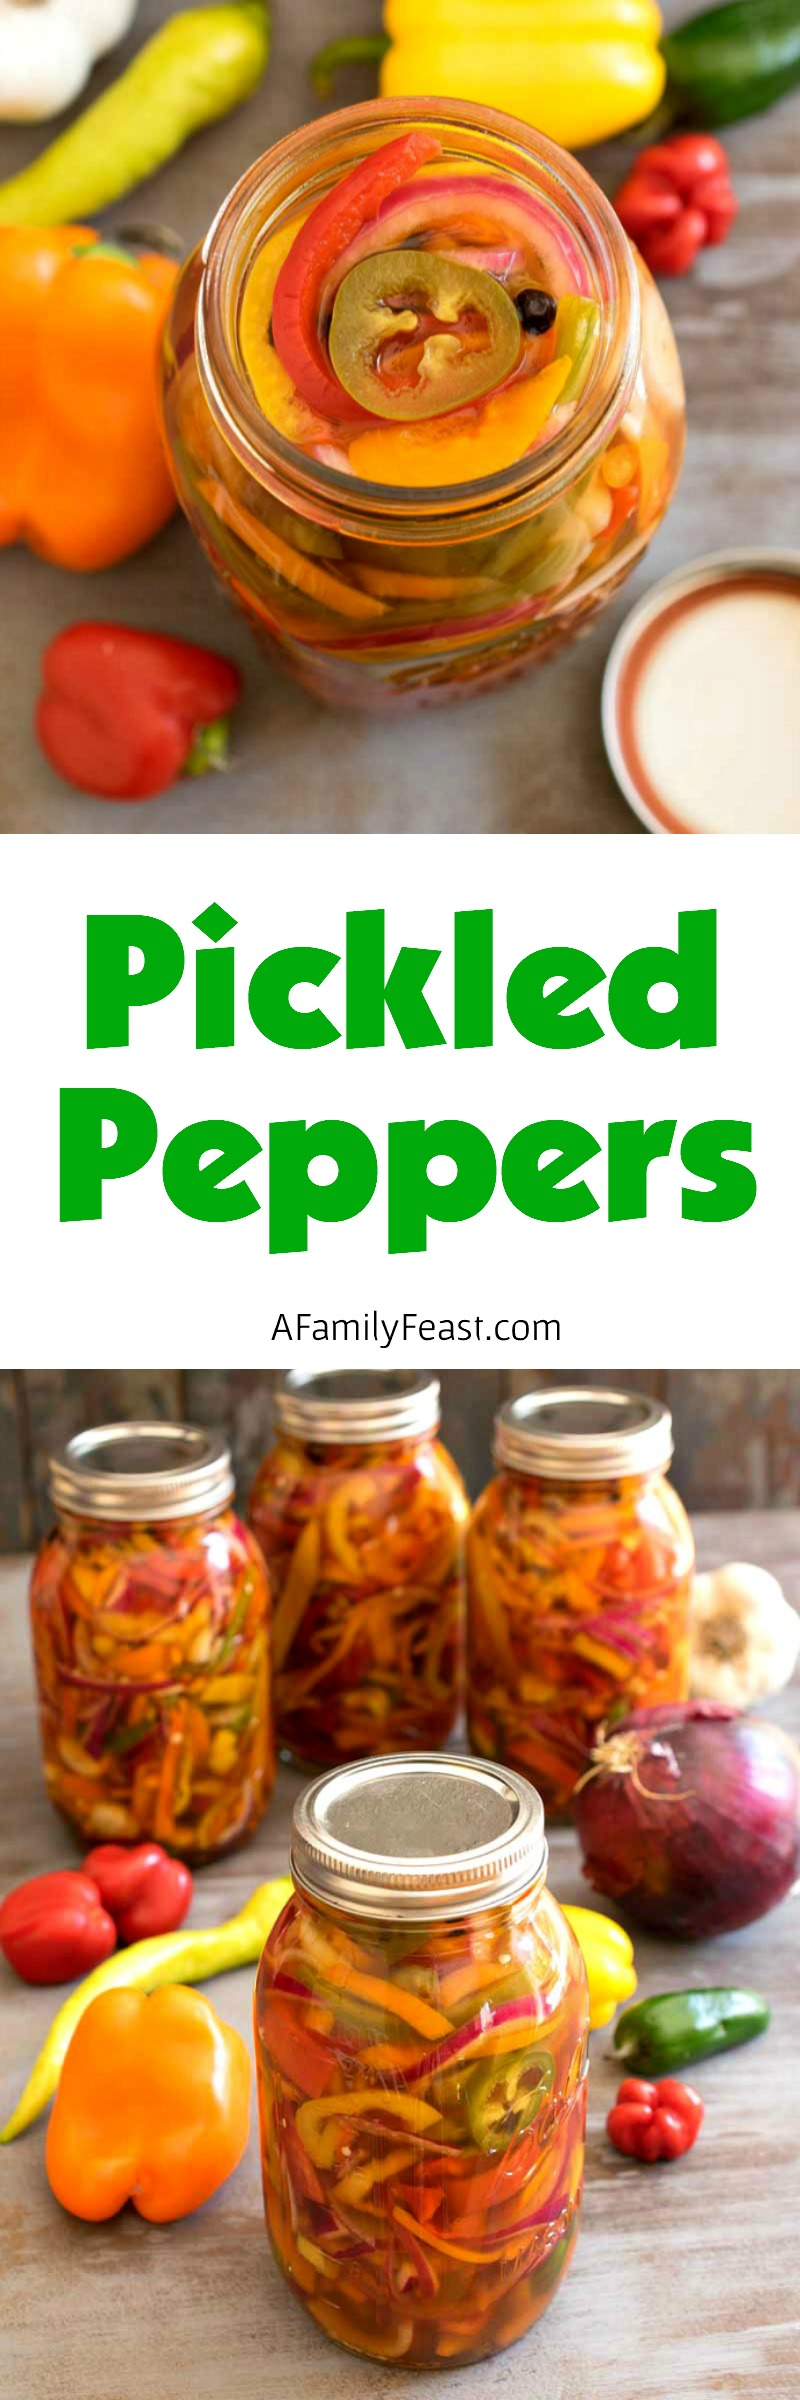 Make these easy, delicious Pickled Peppers with fresh garden peppers - then enjoy all winter long!